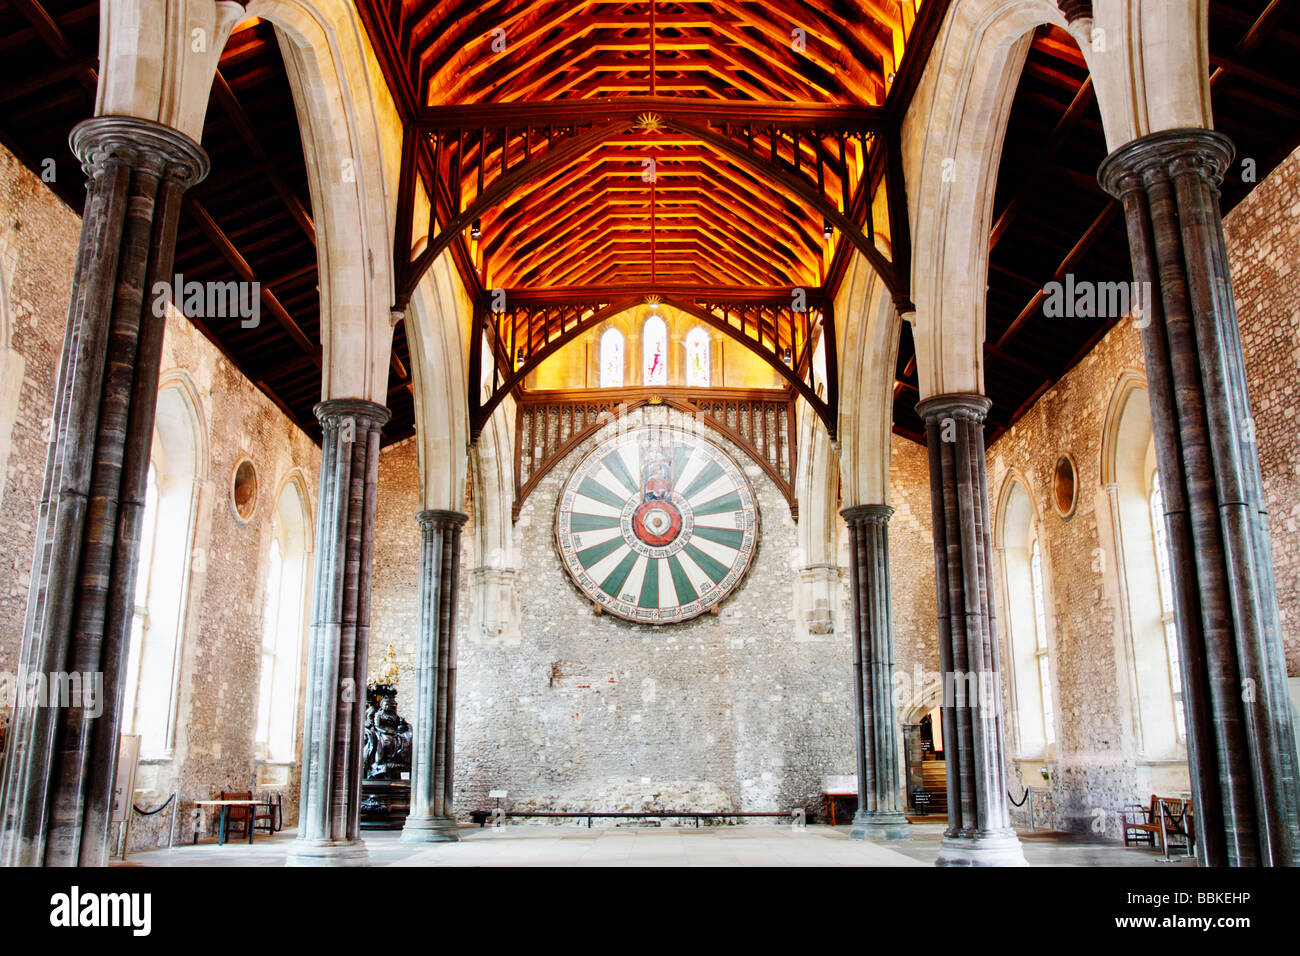 King Arthur's round table in The Great Hall in Winchester, Hampshire, England, UK. Statue of Queen Victoria - Stock Image